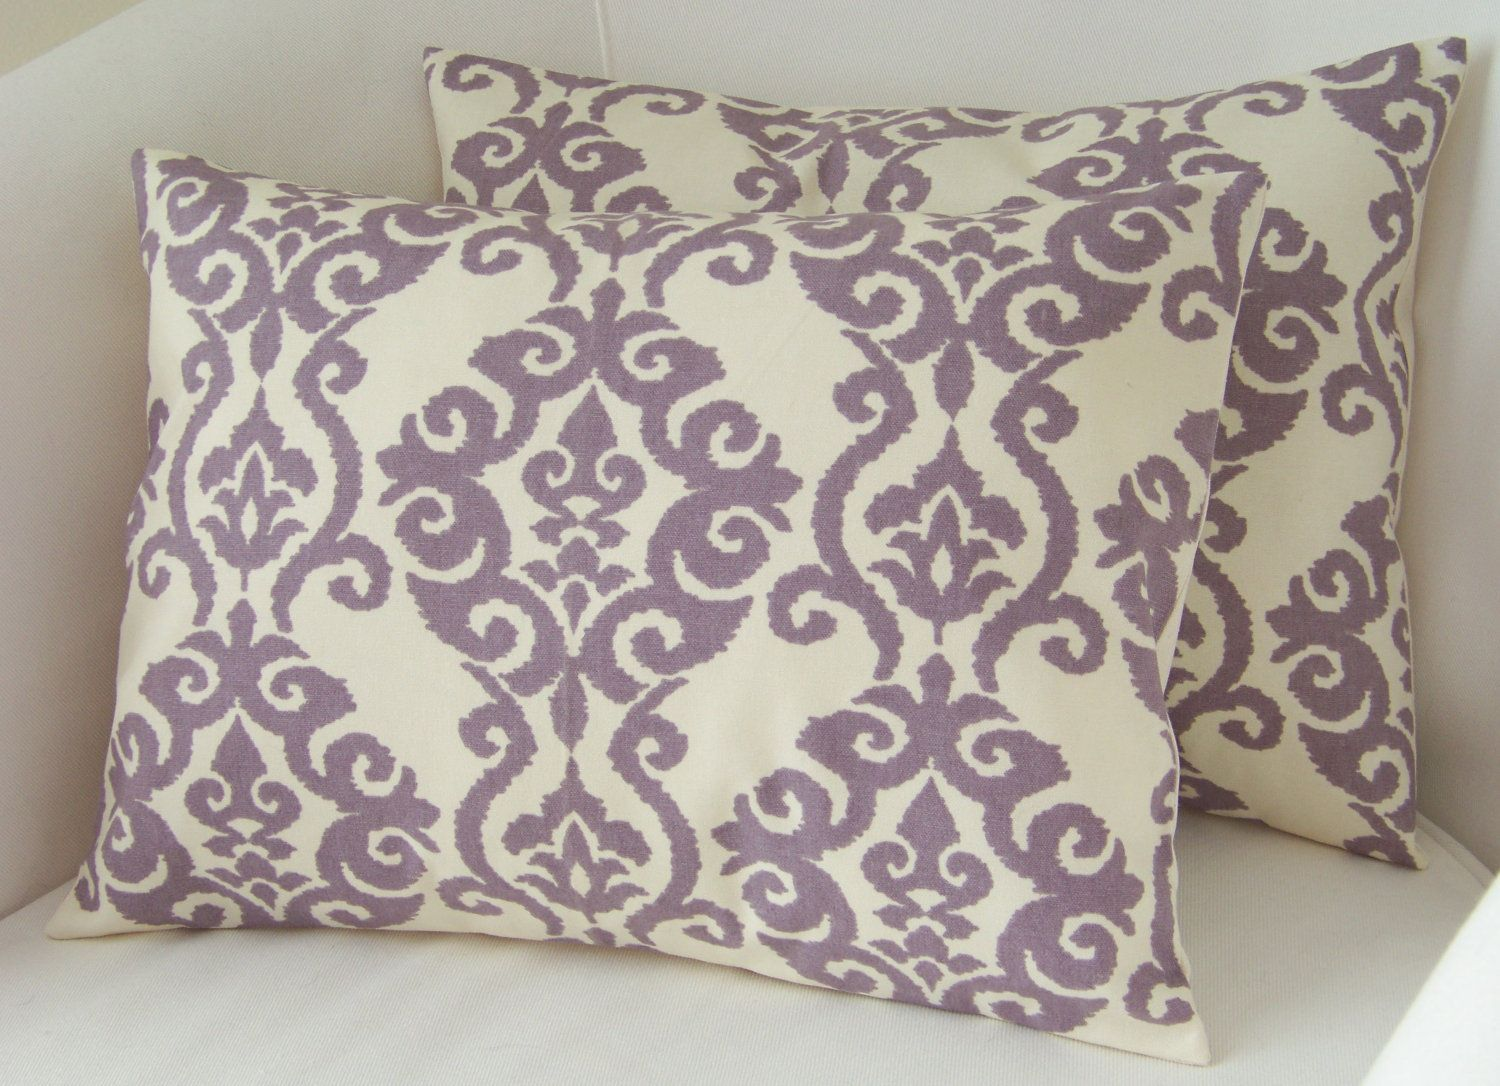 on your accent pillows purple large luxury plu plum bedding colored bedroom lime ideas smooth fall for throw decor decorative green